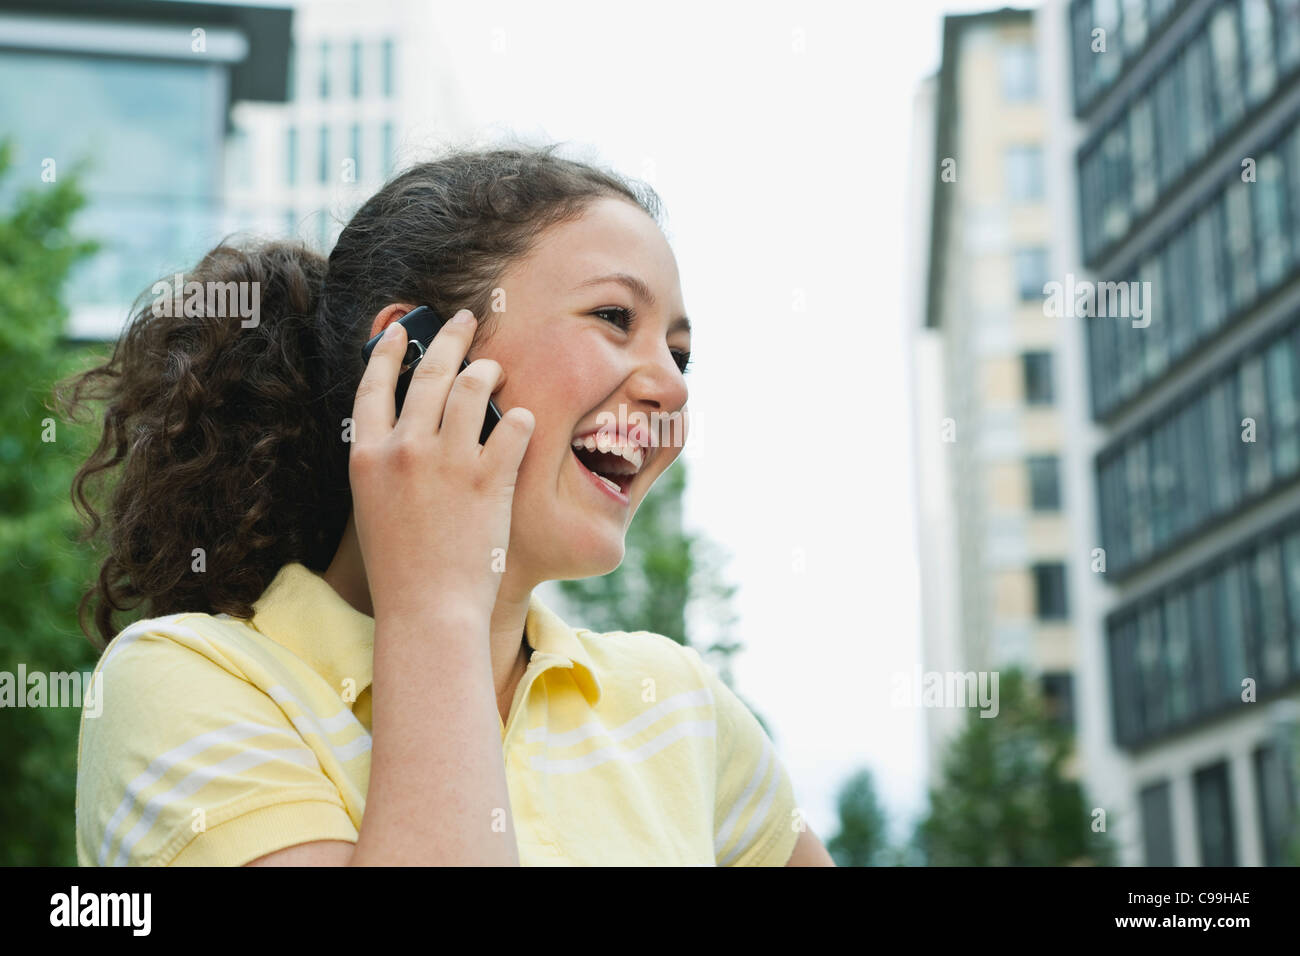 Germany, Berlin, Teenage girl using cell phone in city, laughing Stock Photo